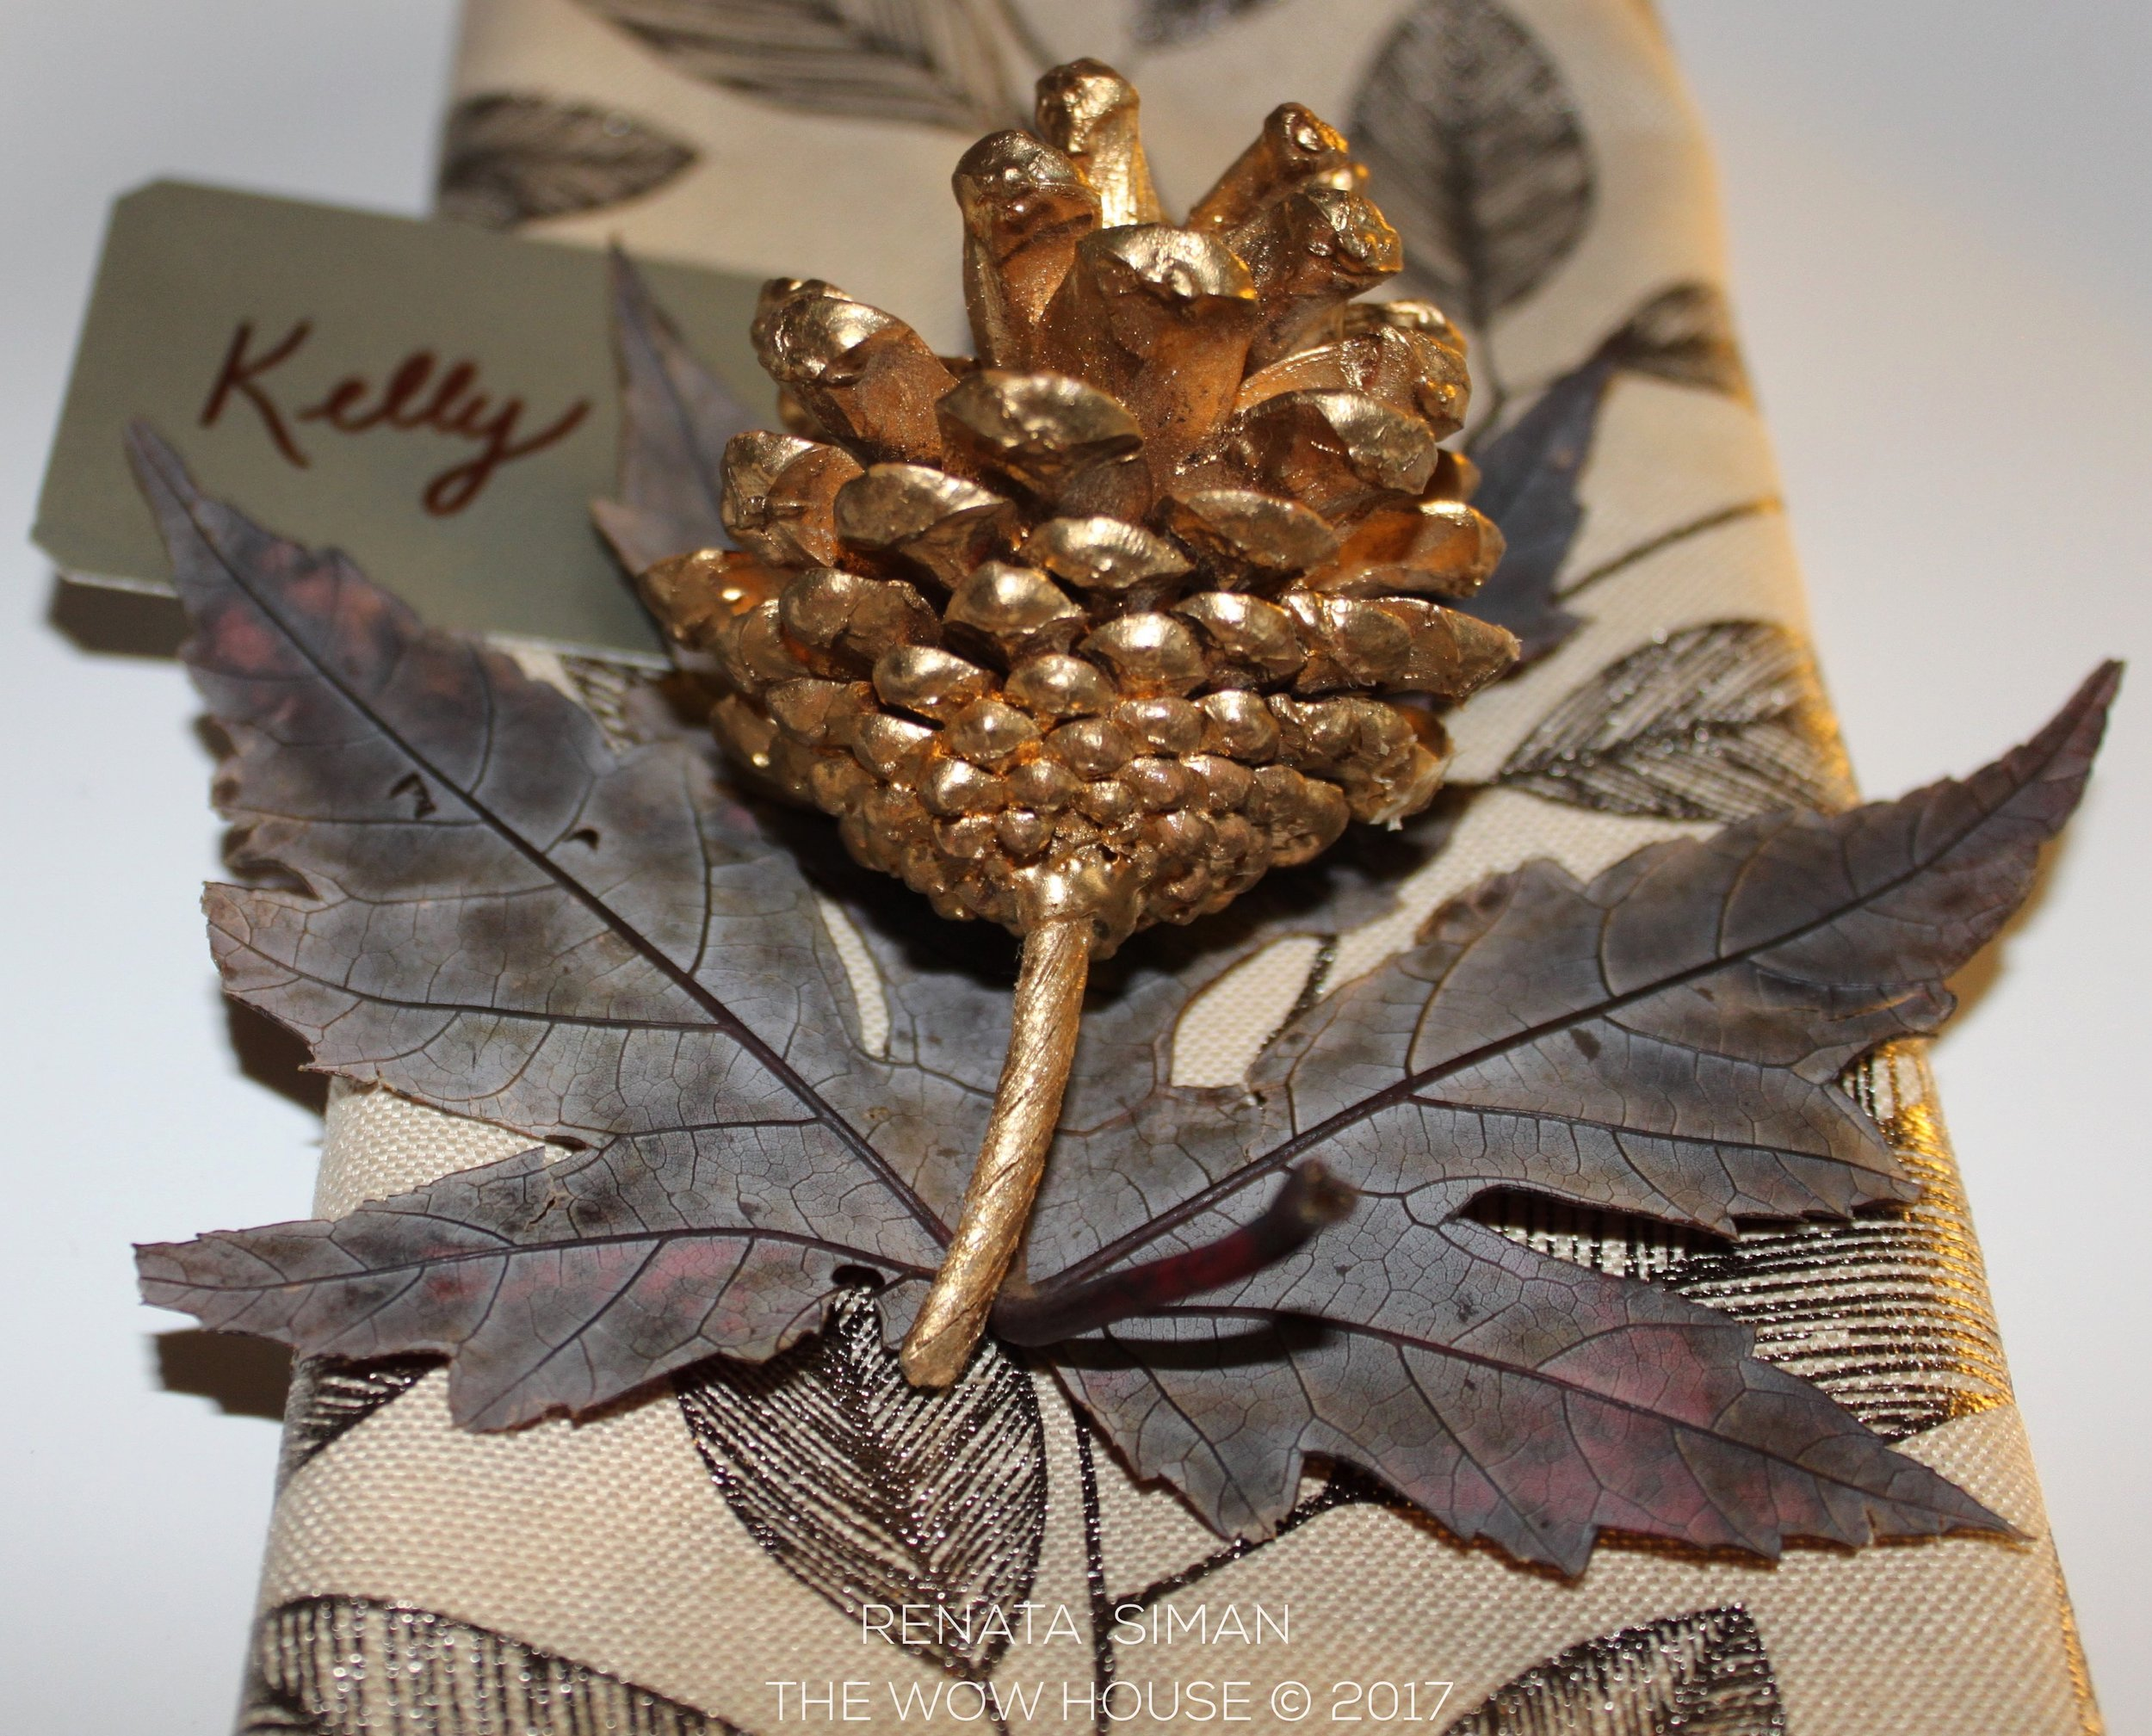 To create a name tag like this one you will only need a fine-tip brown sharpie and some thick pretty paper. I used a flap of the box - silver color gift box I had left over. Then cut each corner off for a more sophisticated polished look.